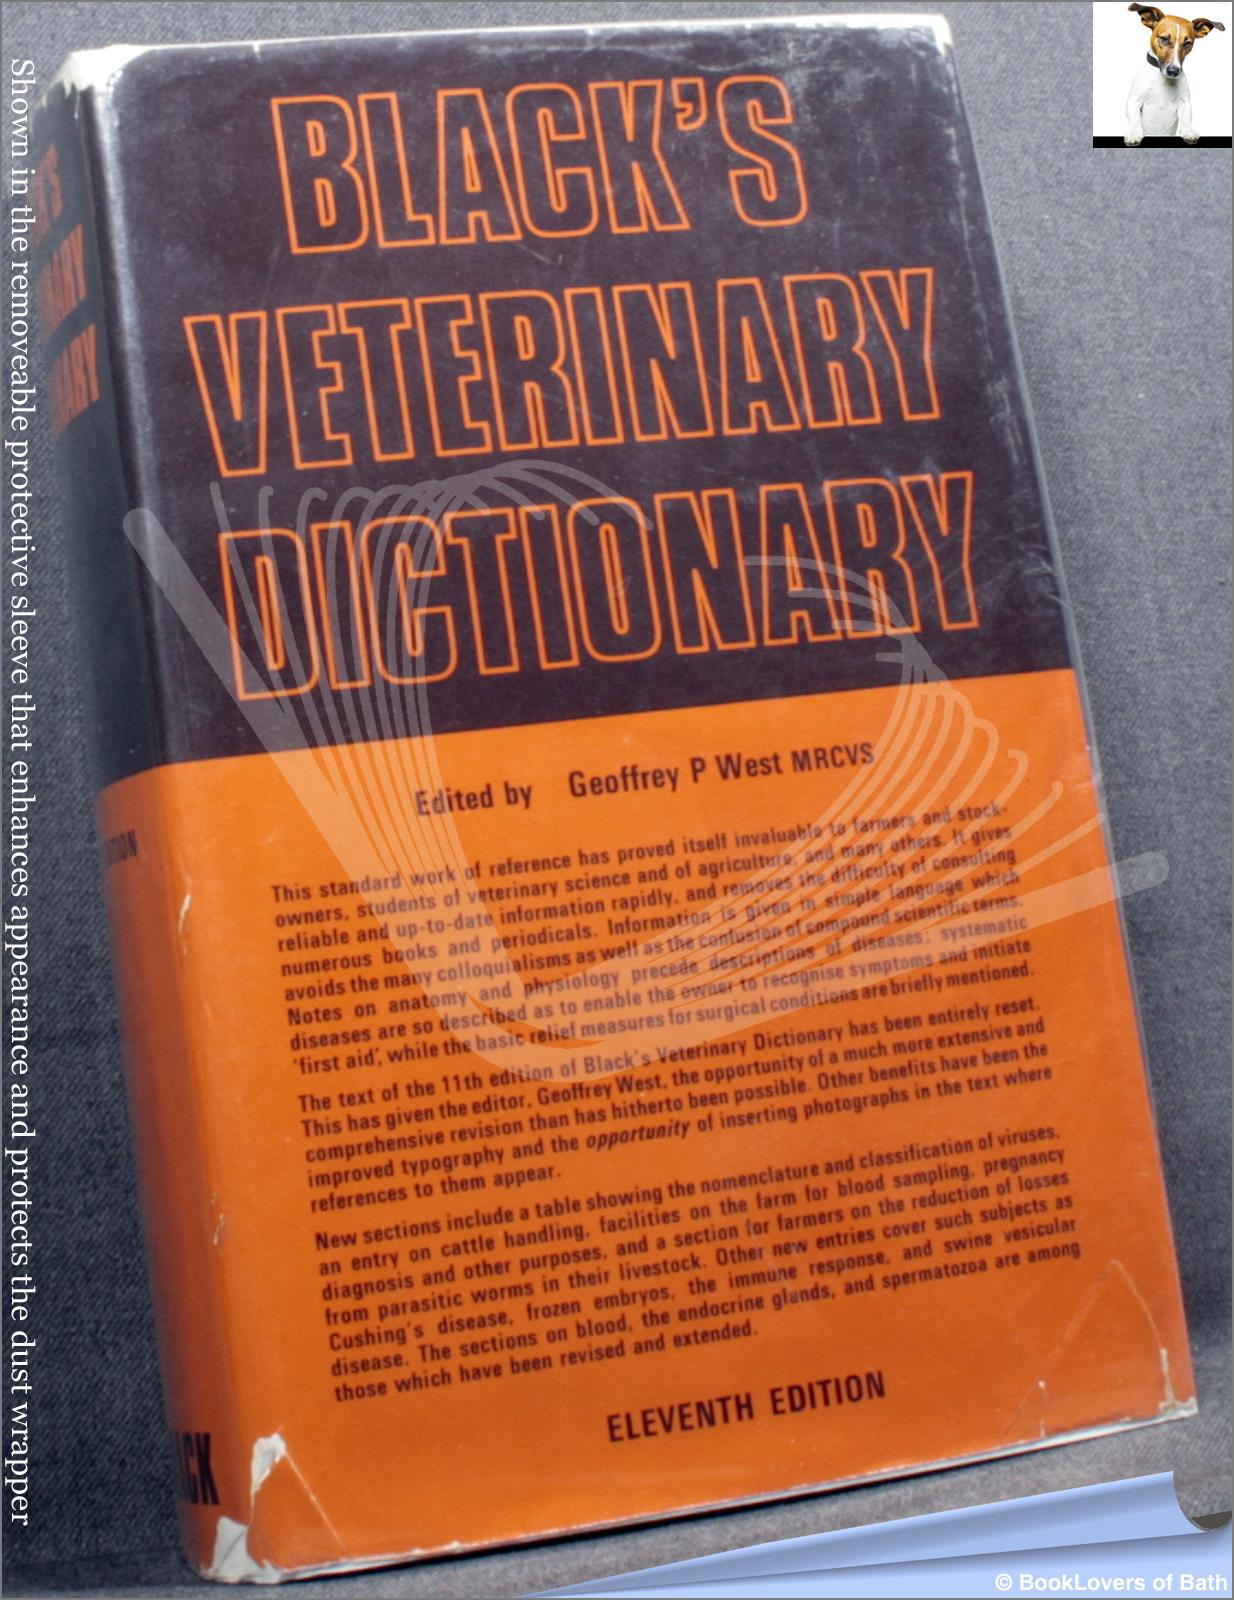 Black's Veterinary Dictionary - Edited by Geoffrey P. West